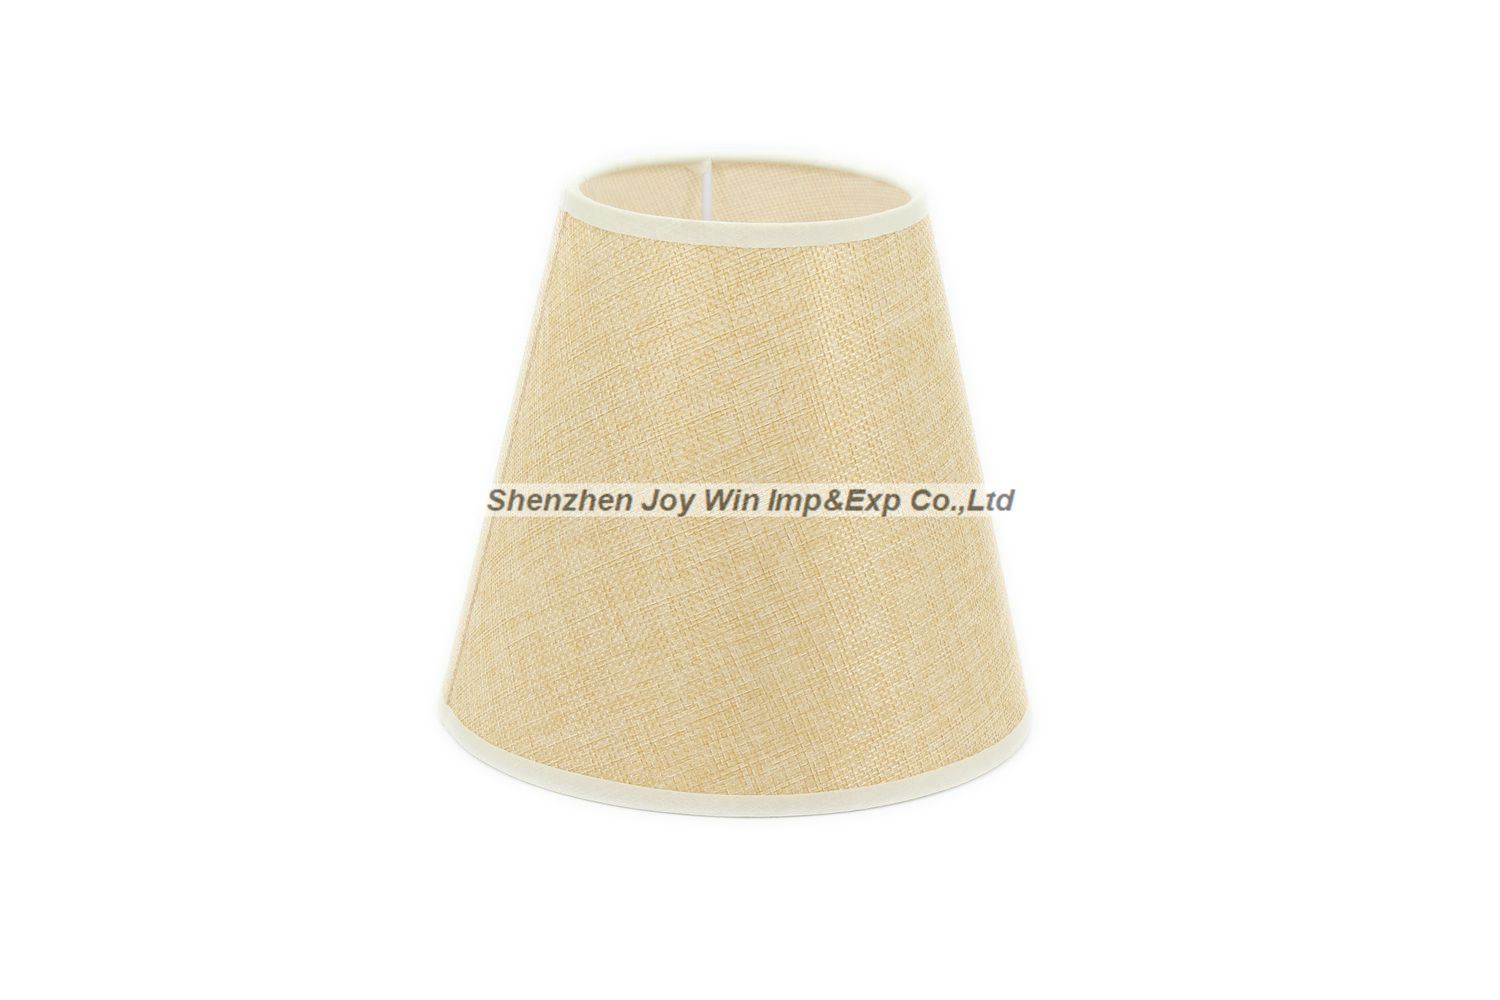 China Lamp Shade, Lamp Shade Manufacturers, Suppliers | Made-in ...